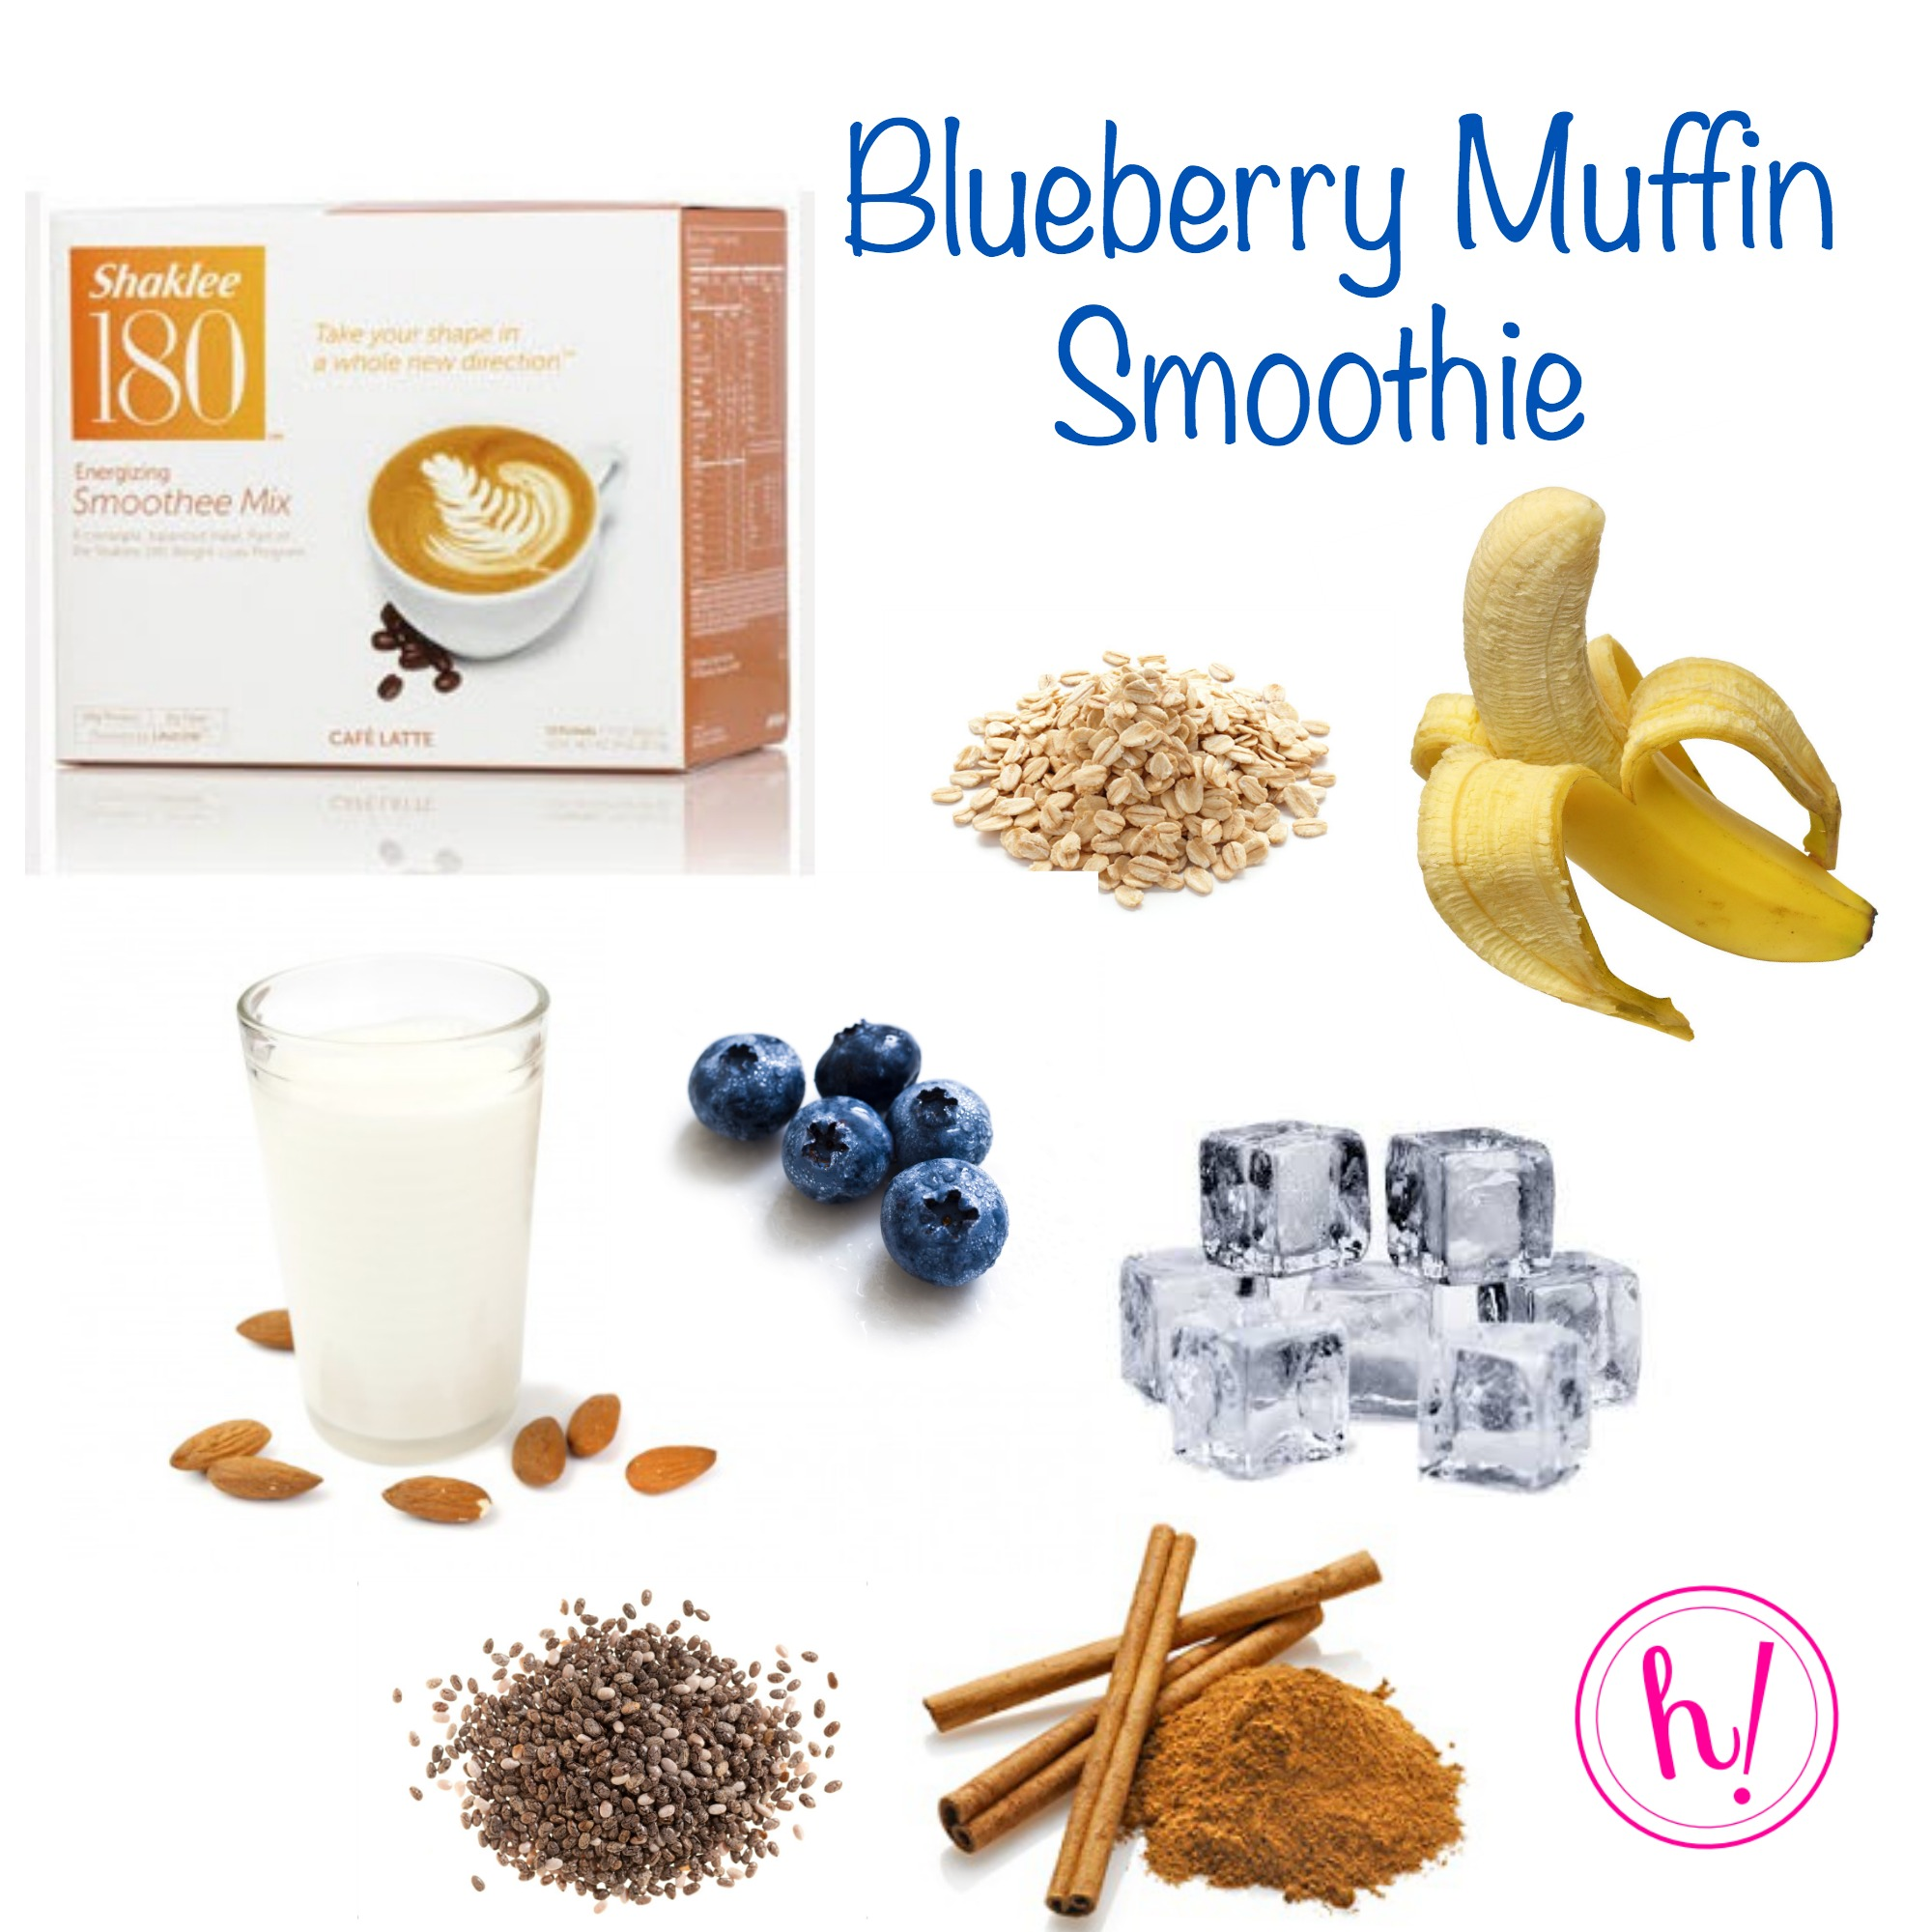 Healthy Blueberry Muffin meal smoothie from Hurray Kimmay